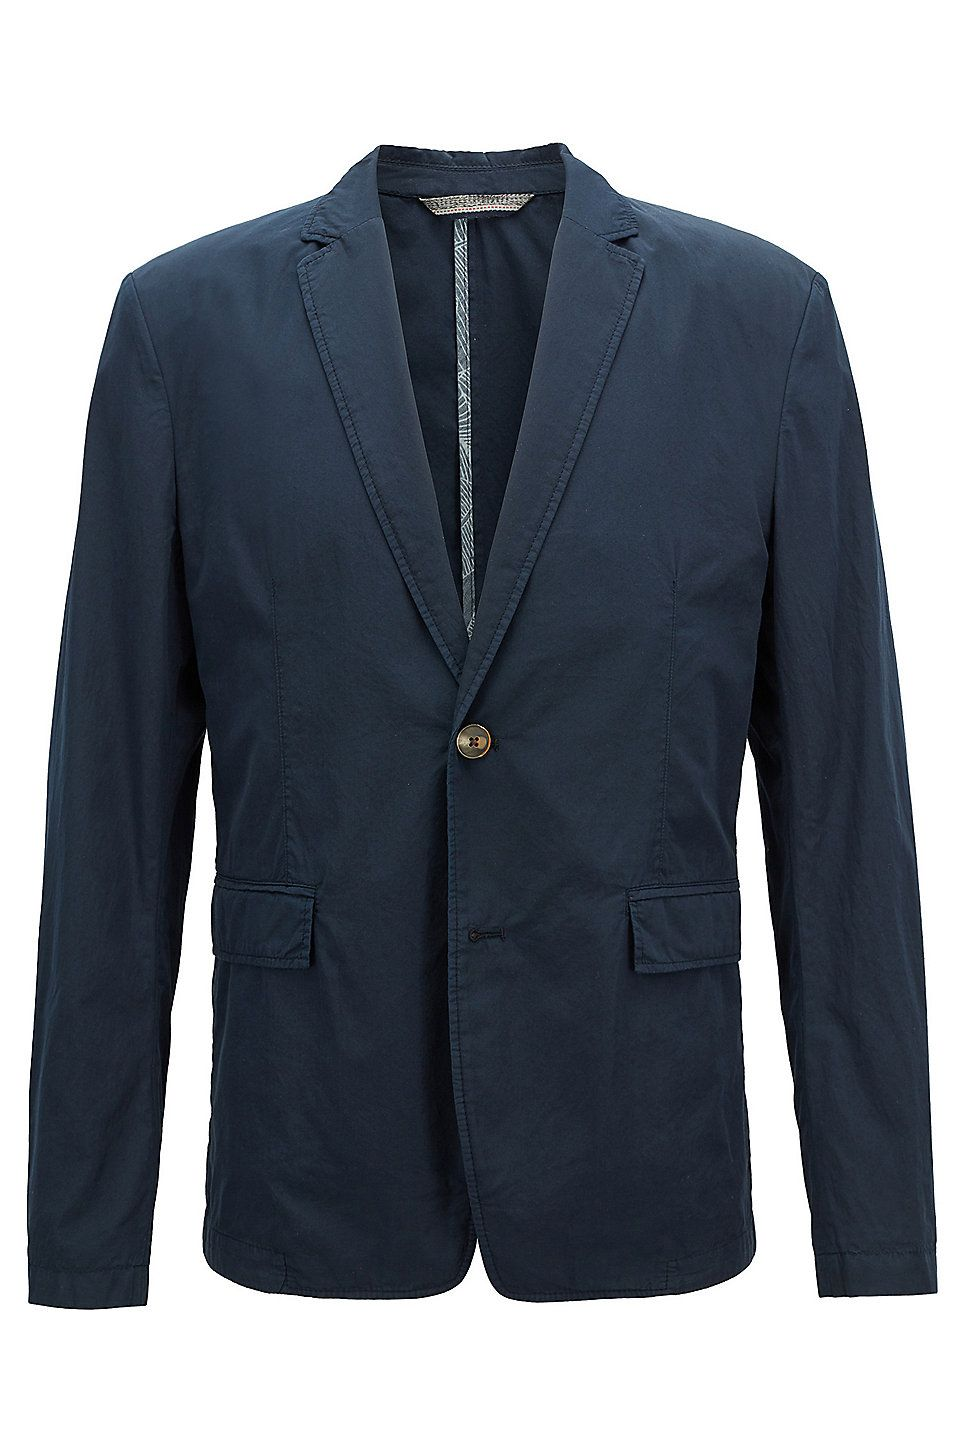 0a8ac9f6c HUGO BOSS Slim-fit blazer in lightweight Italian cotton - Dark Blue Blazers  from BOSS for Men in the official HUGO BOSS Online Store free shipping